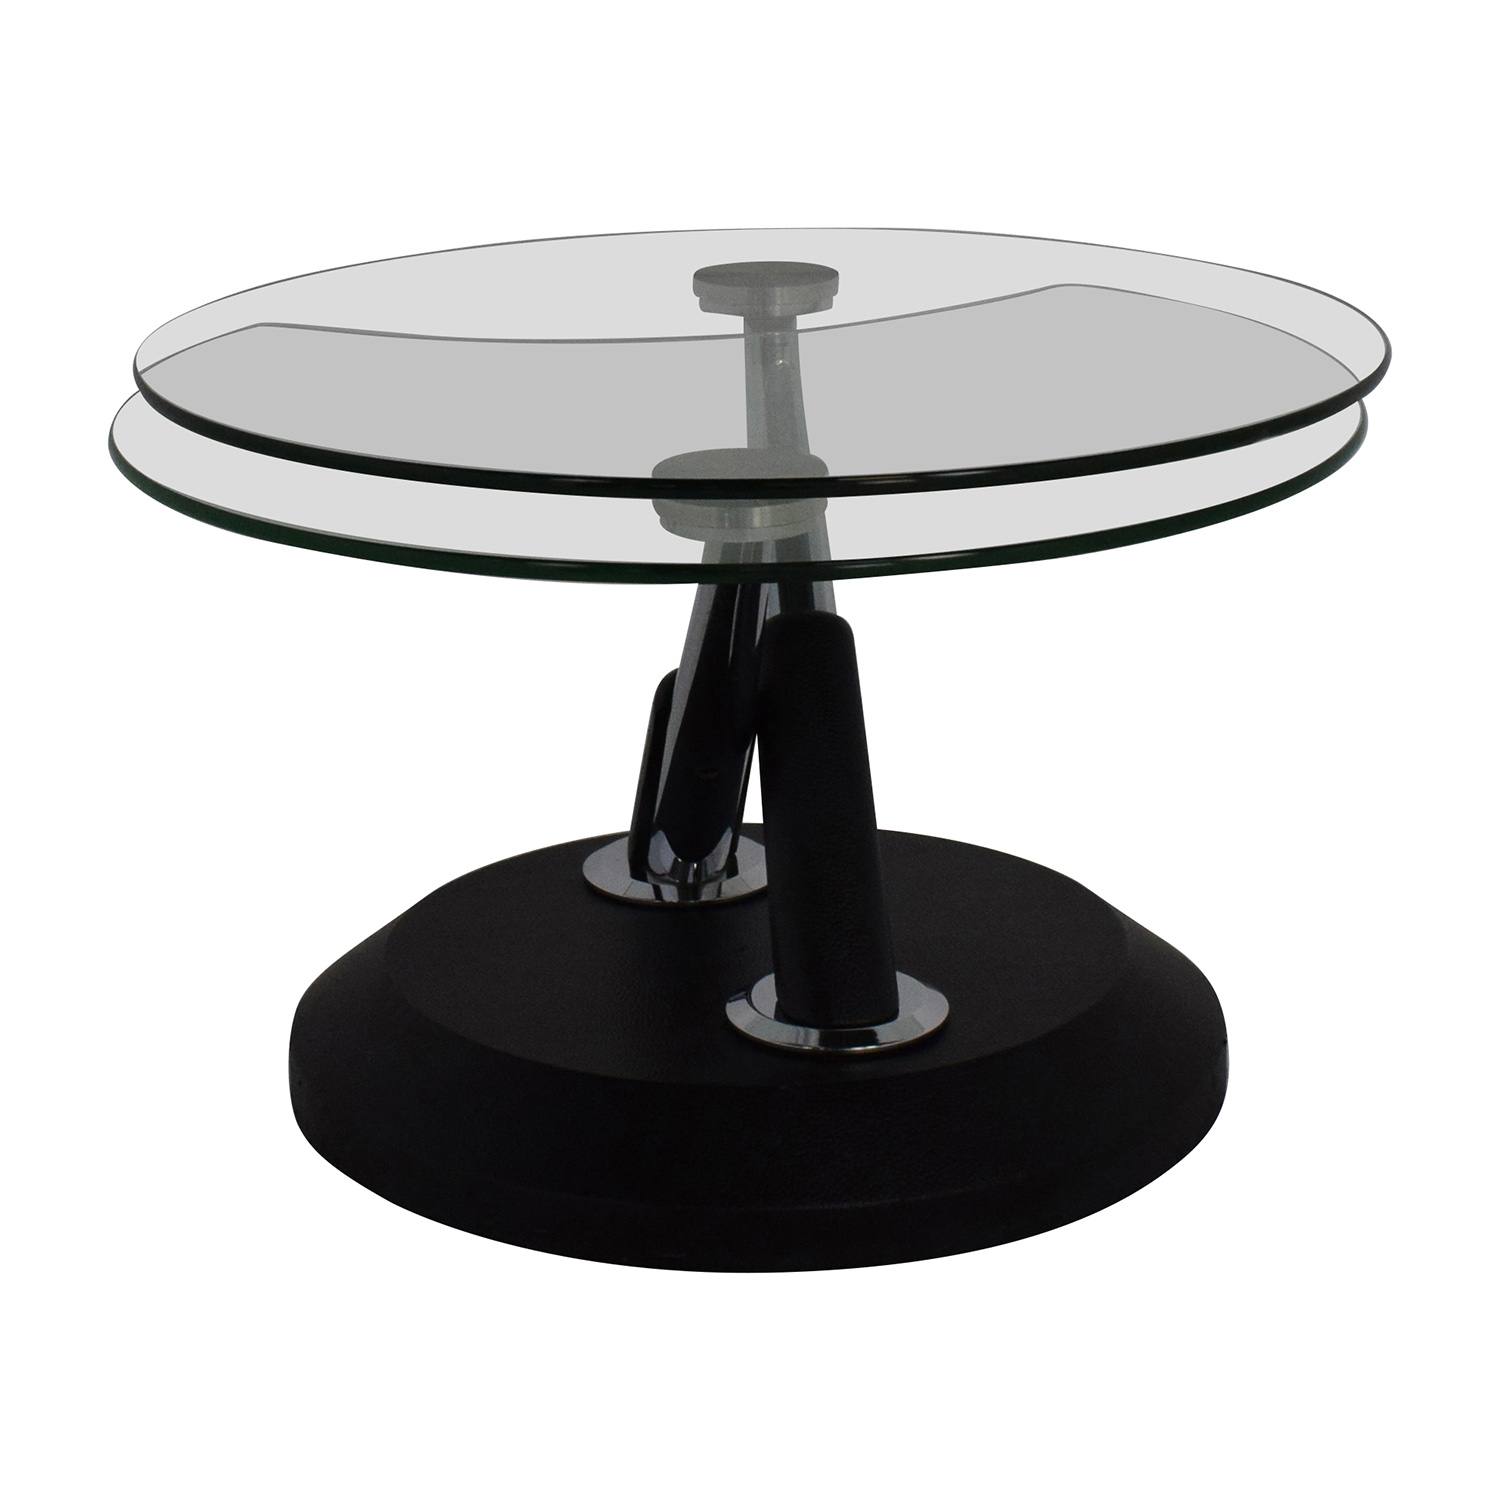 58 Off Raymour Flanigan Raymour Flanigan Modesto Glass Swivel Coffee Table Tables